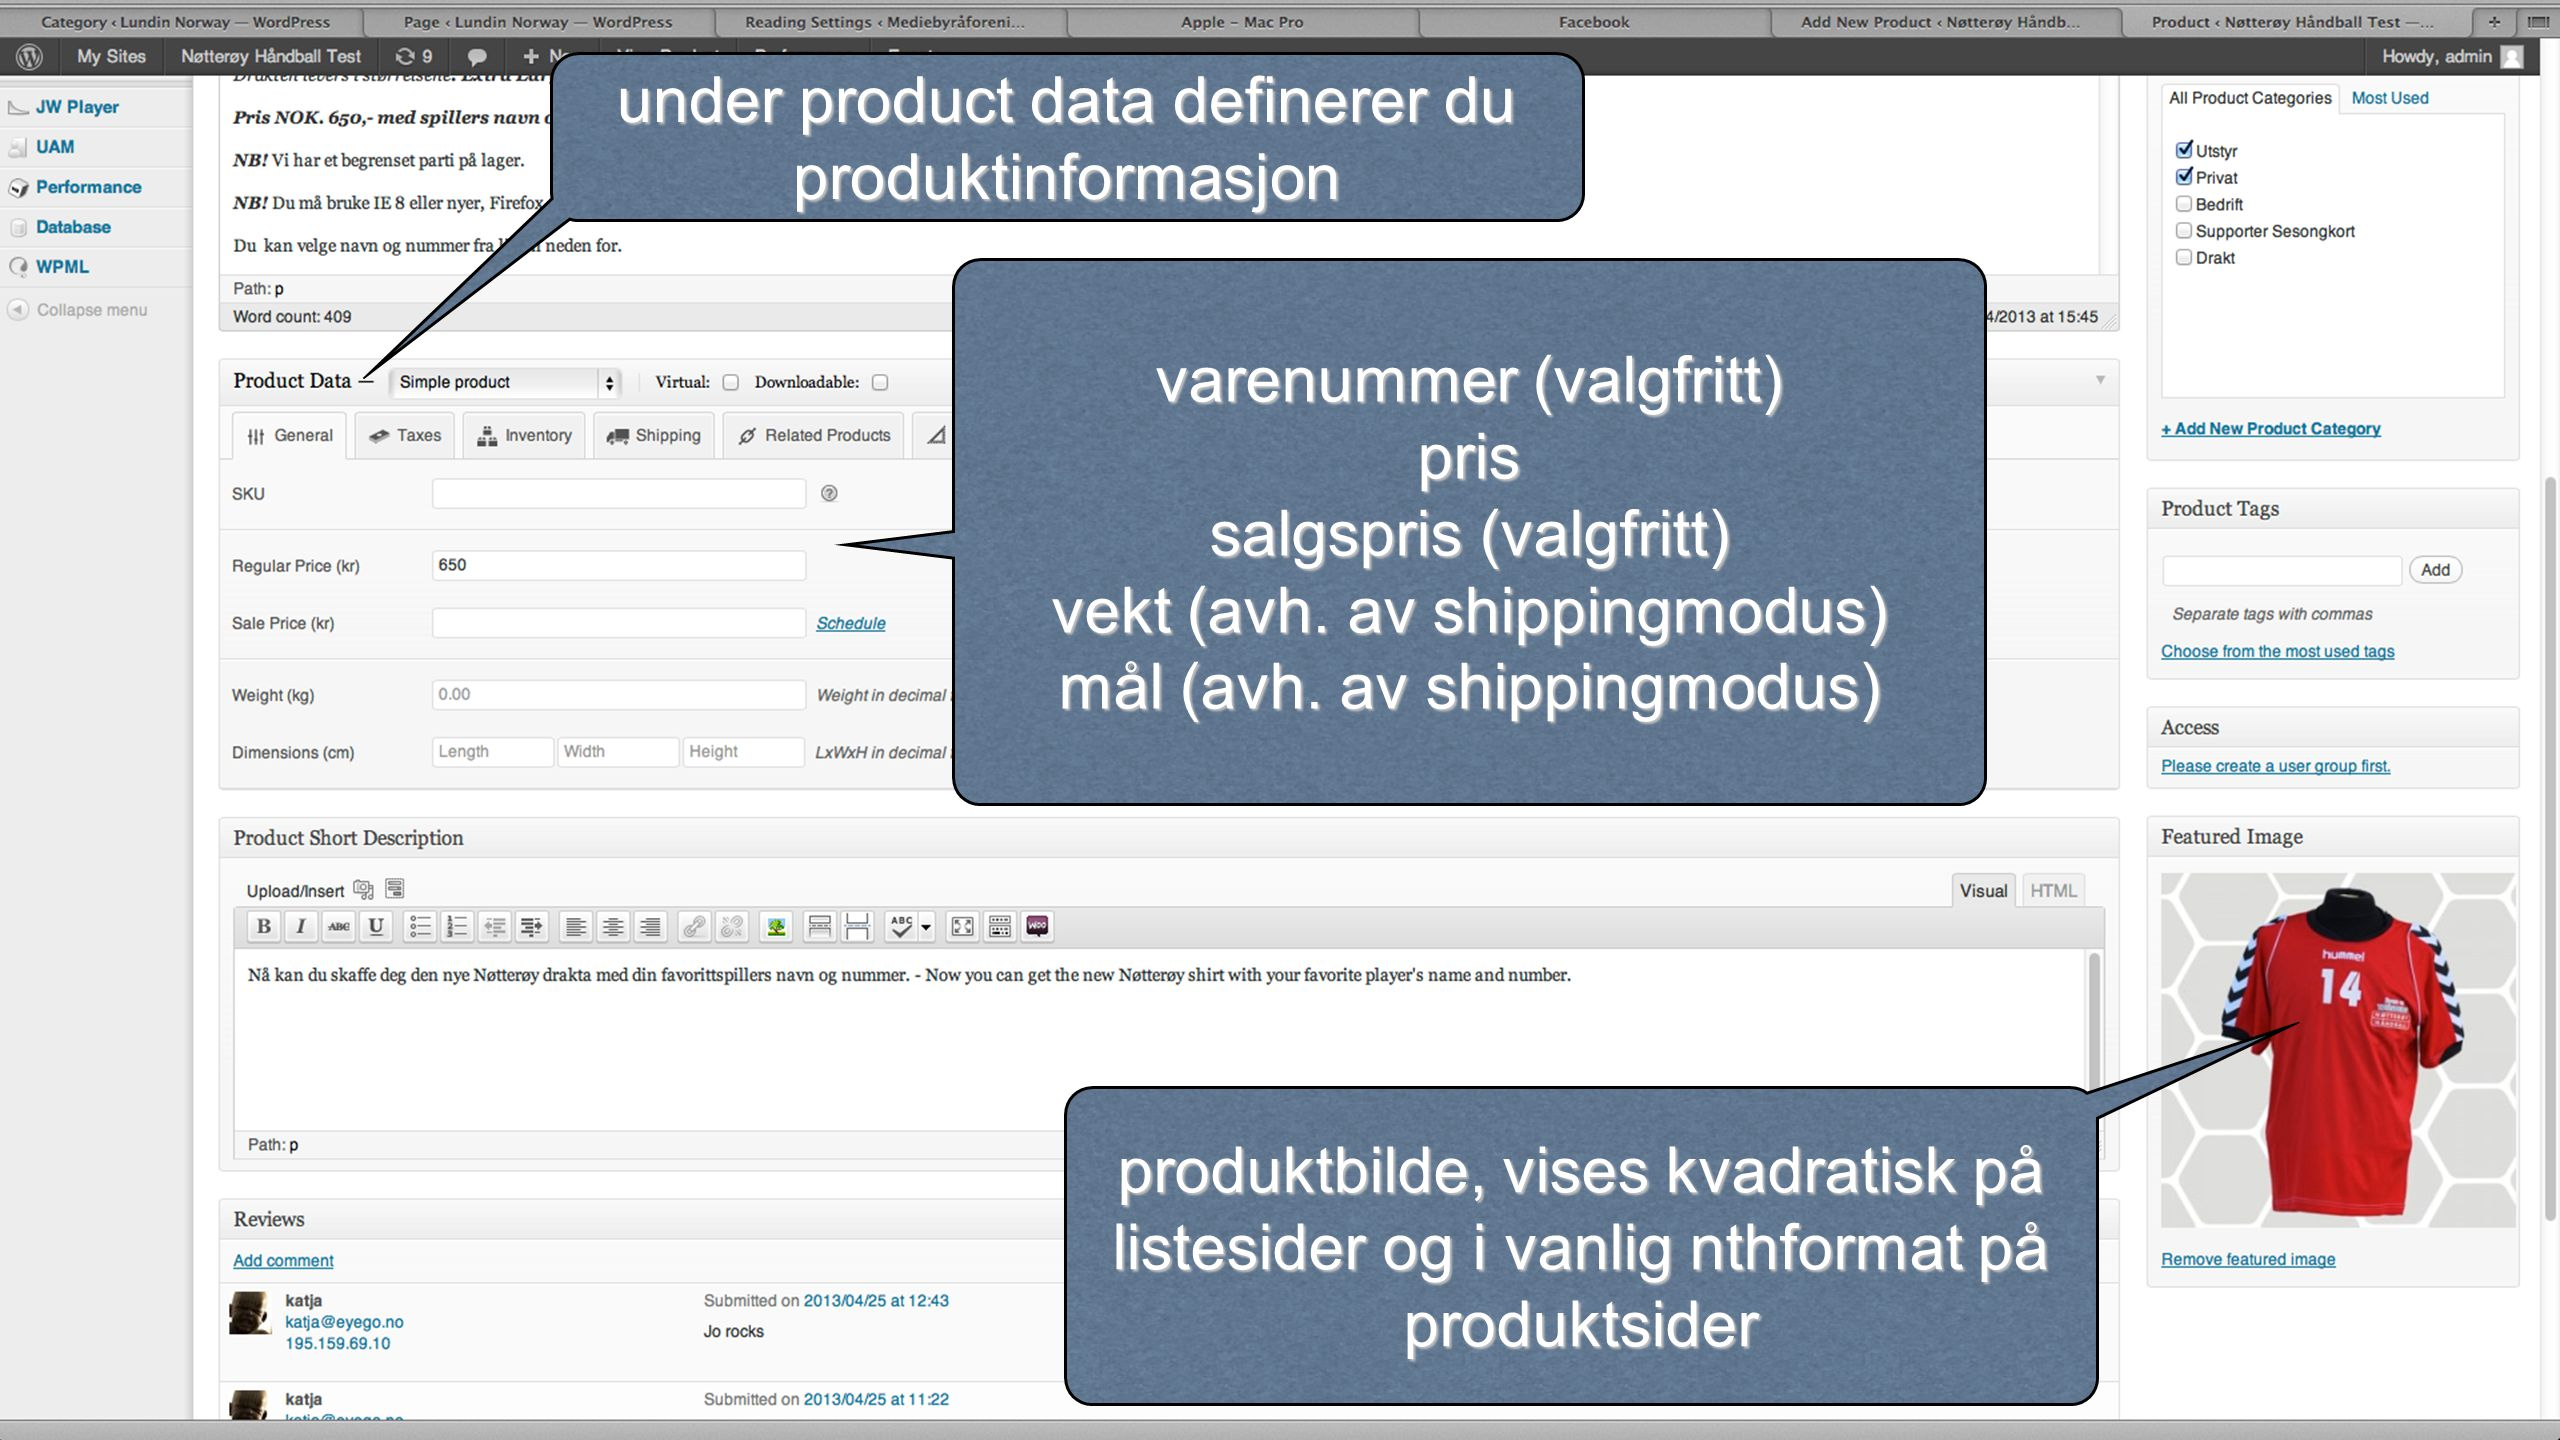 under product data definerer du produktinformasjon